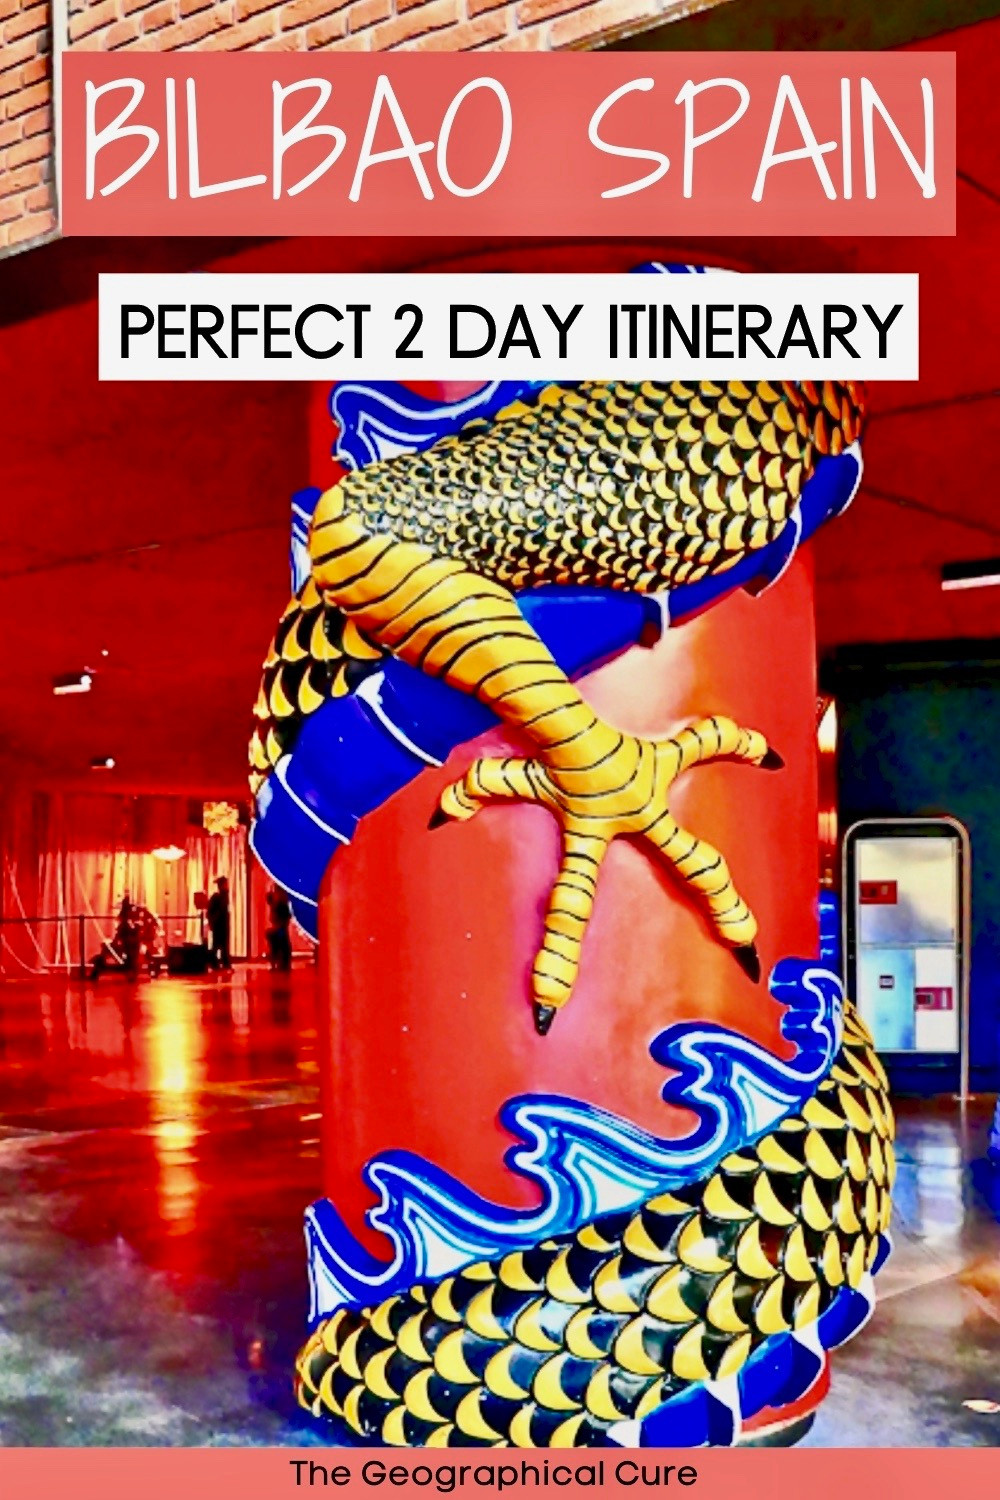 Perfect 2 Day Itinerary for Bilbao Spain